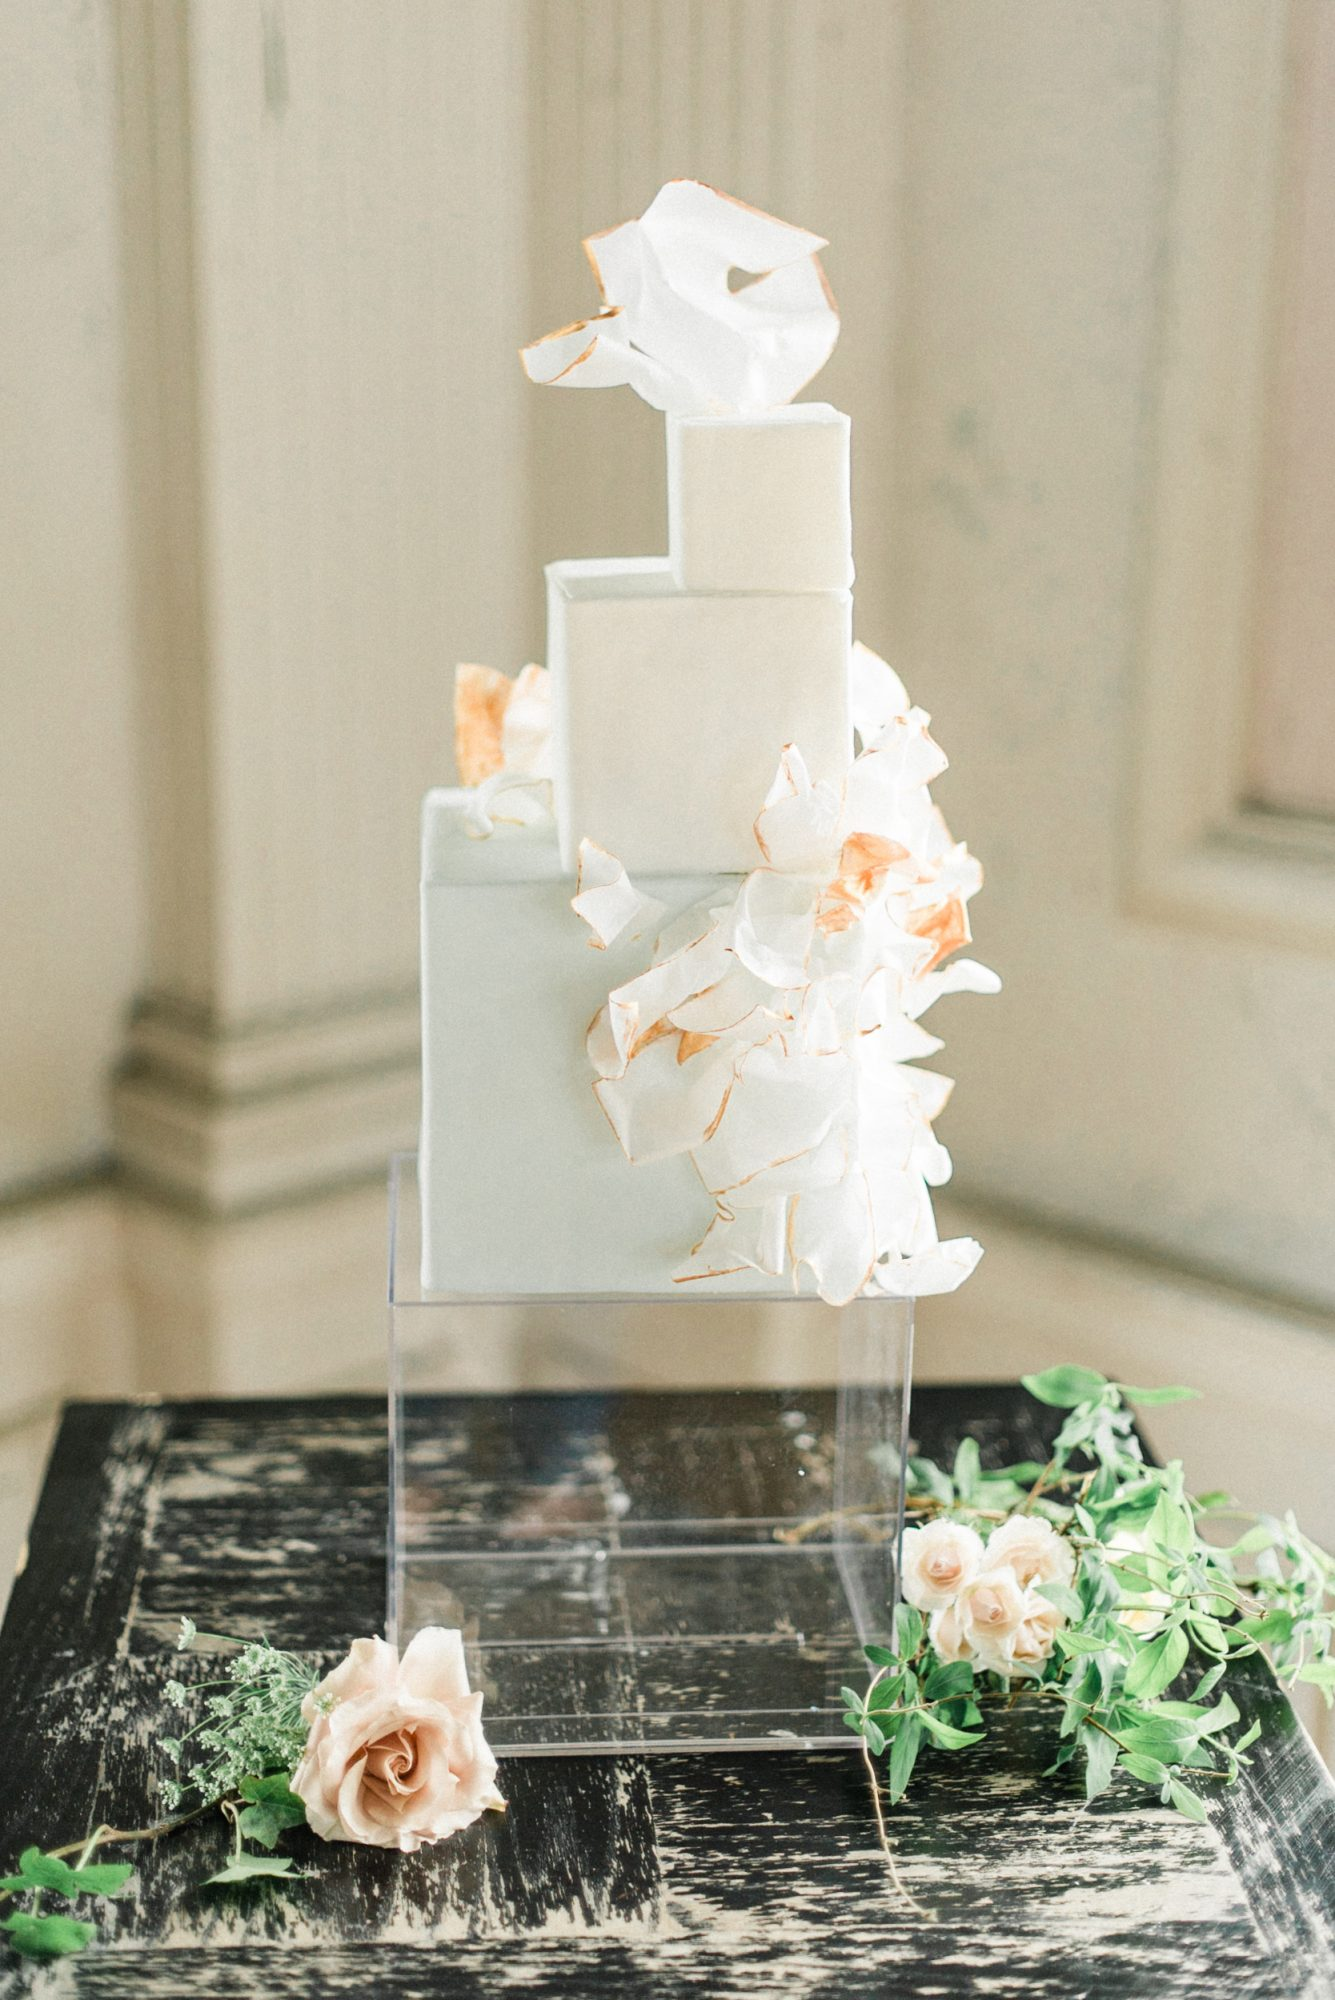 micro tier wedding cakes cubed white layers